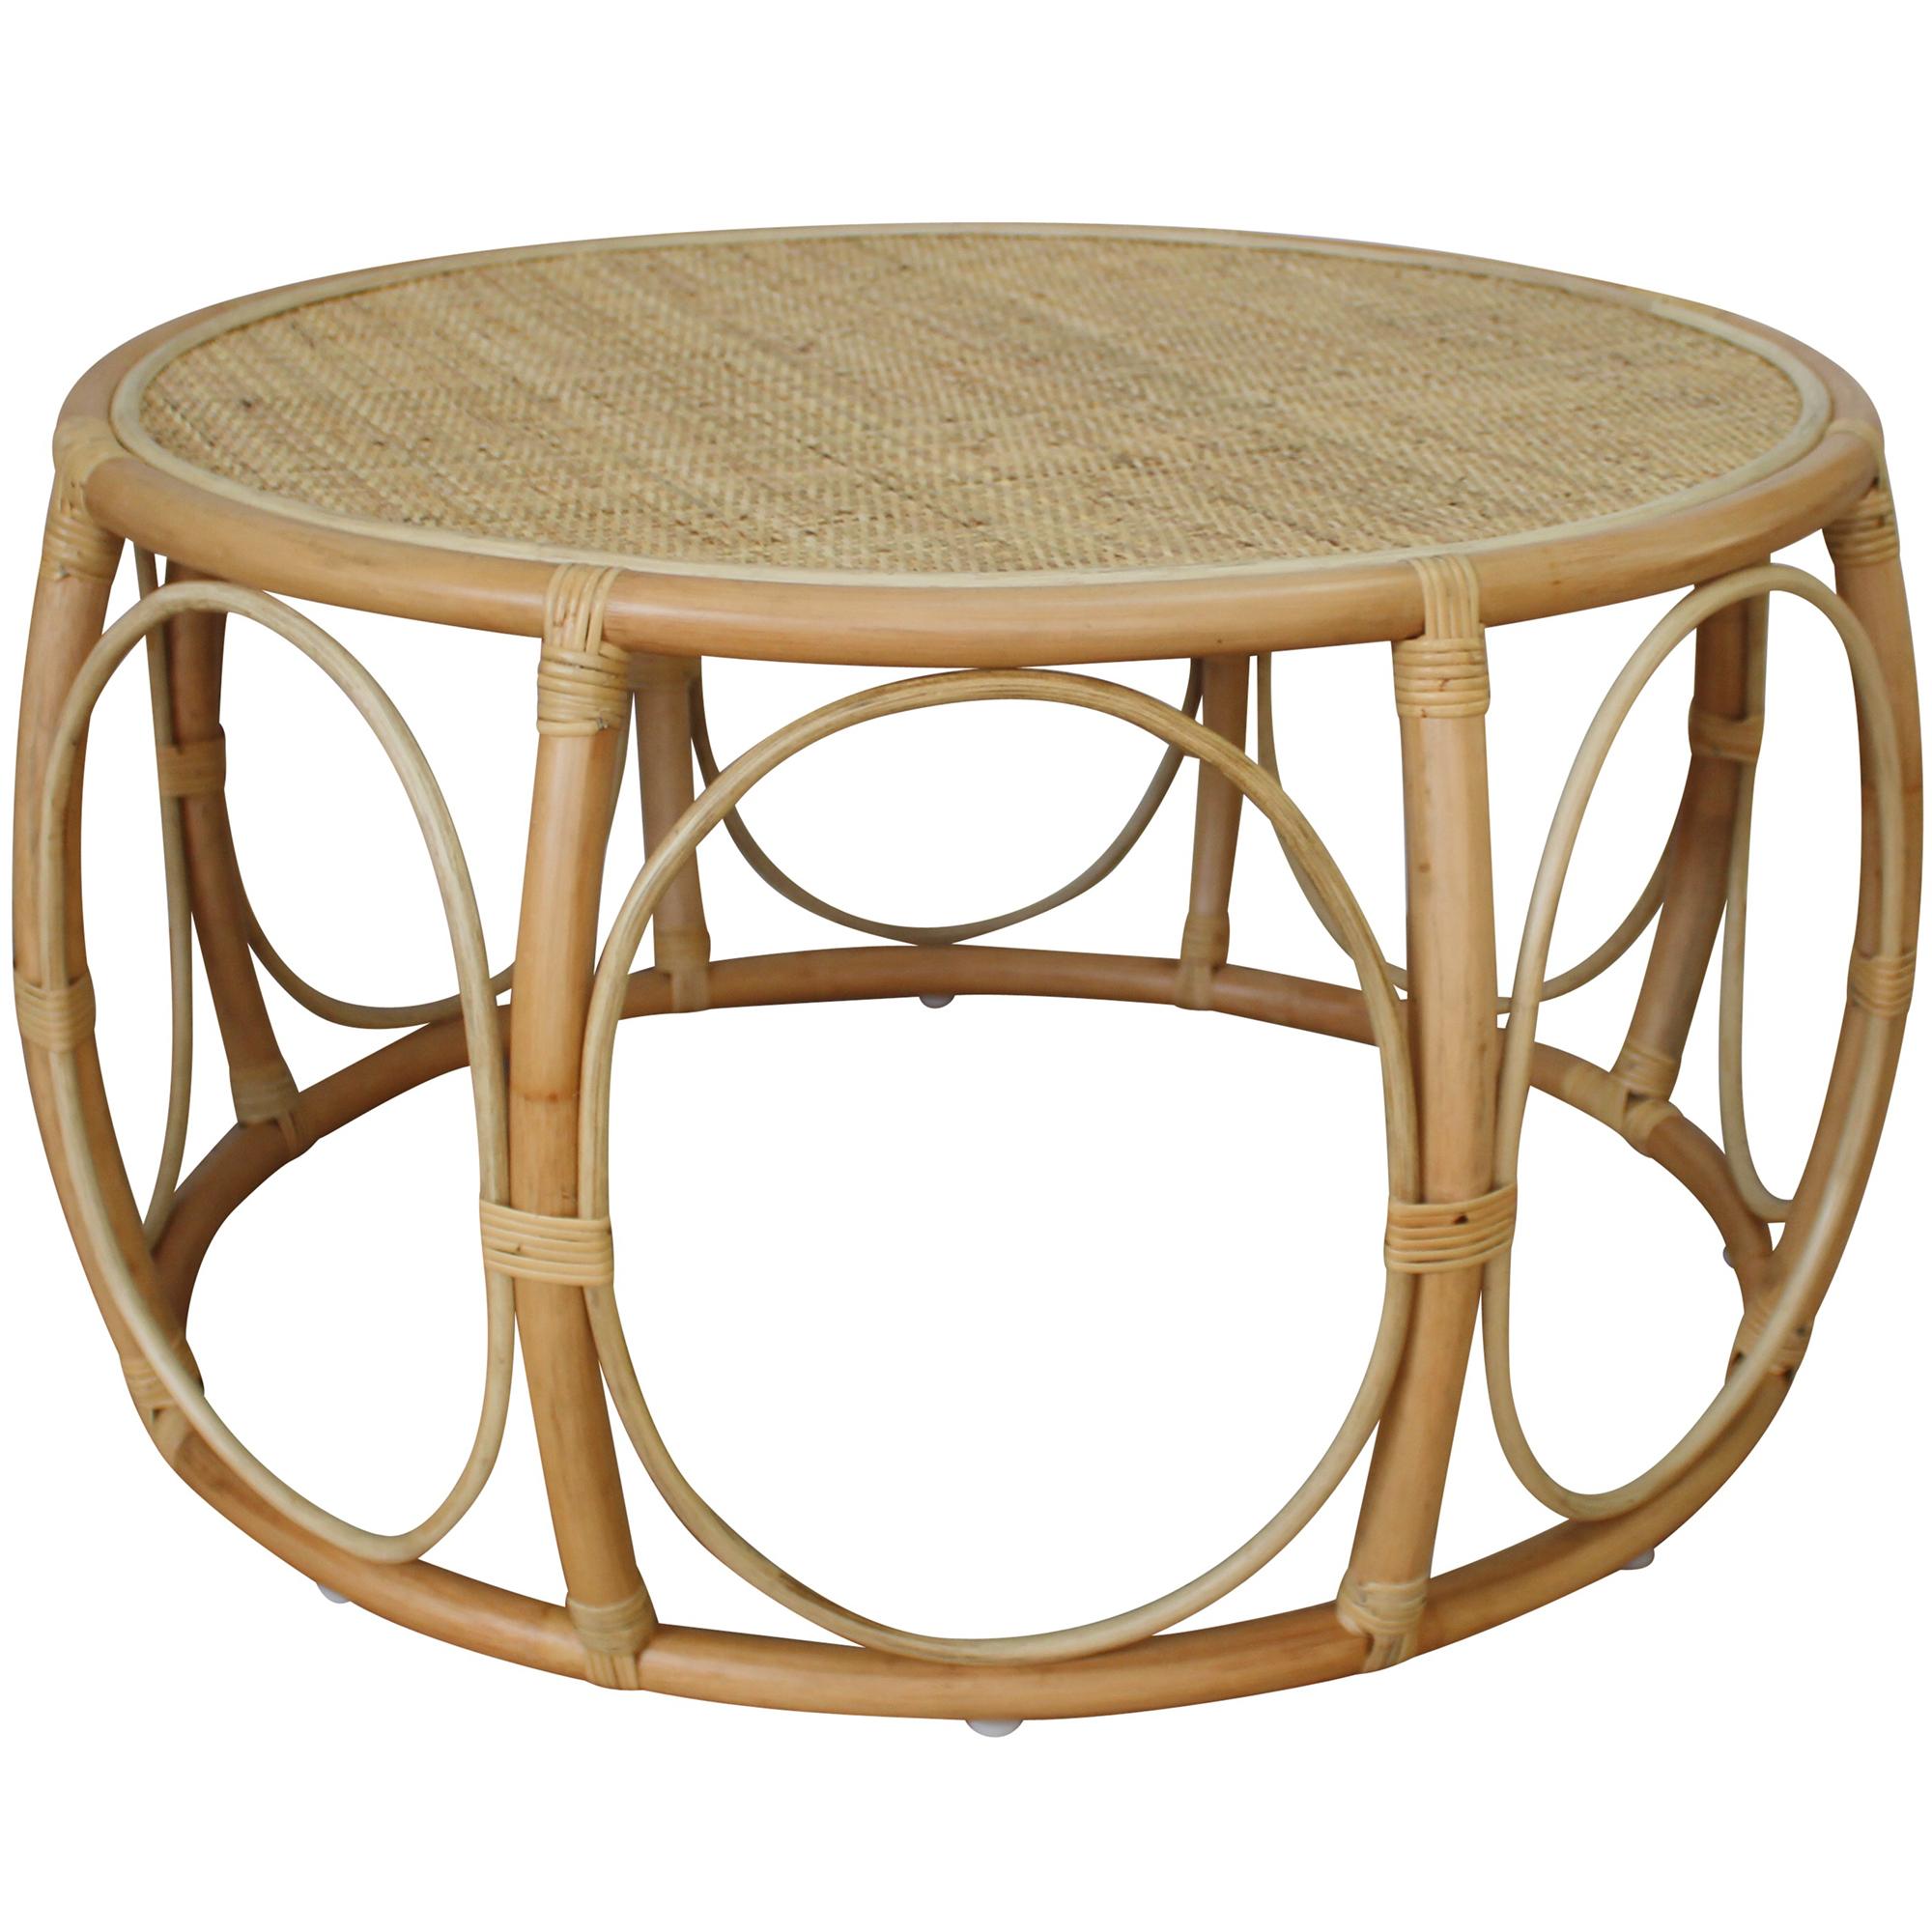 Picture of: Palm Cove Living Echo Rattan Coffee Table Reviews Temple Webster